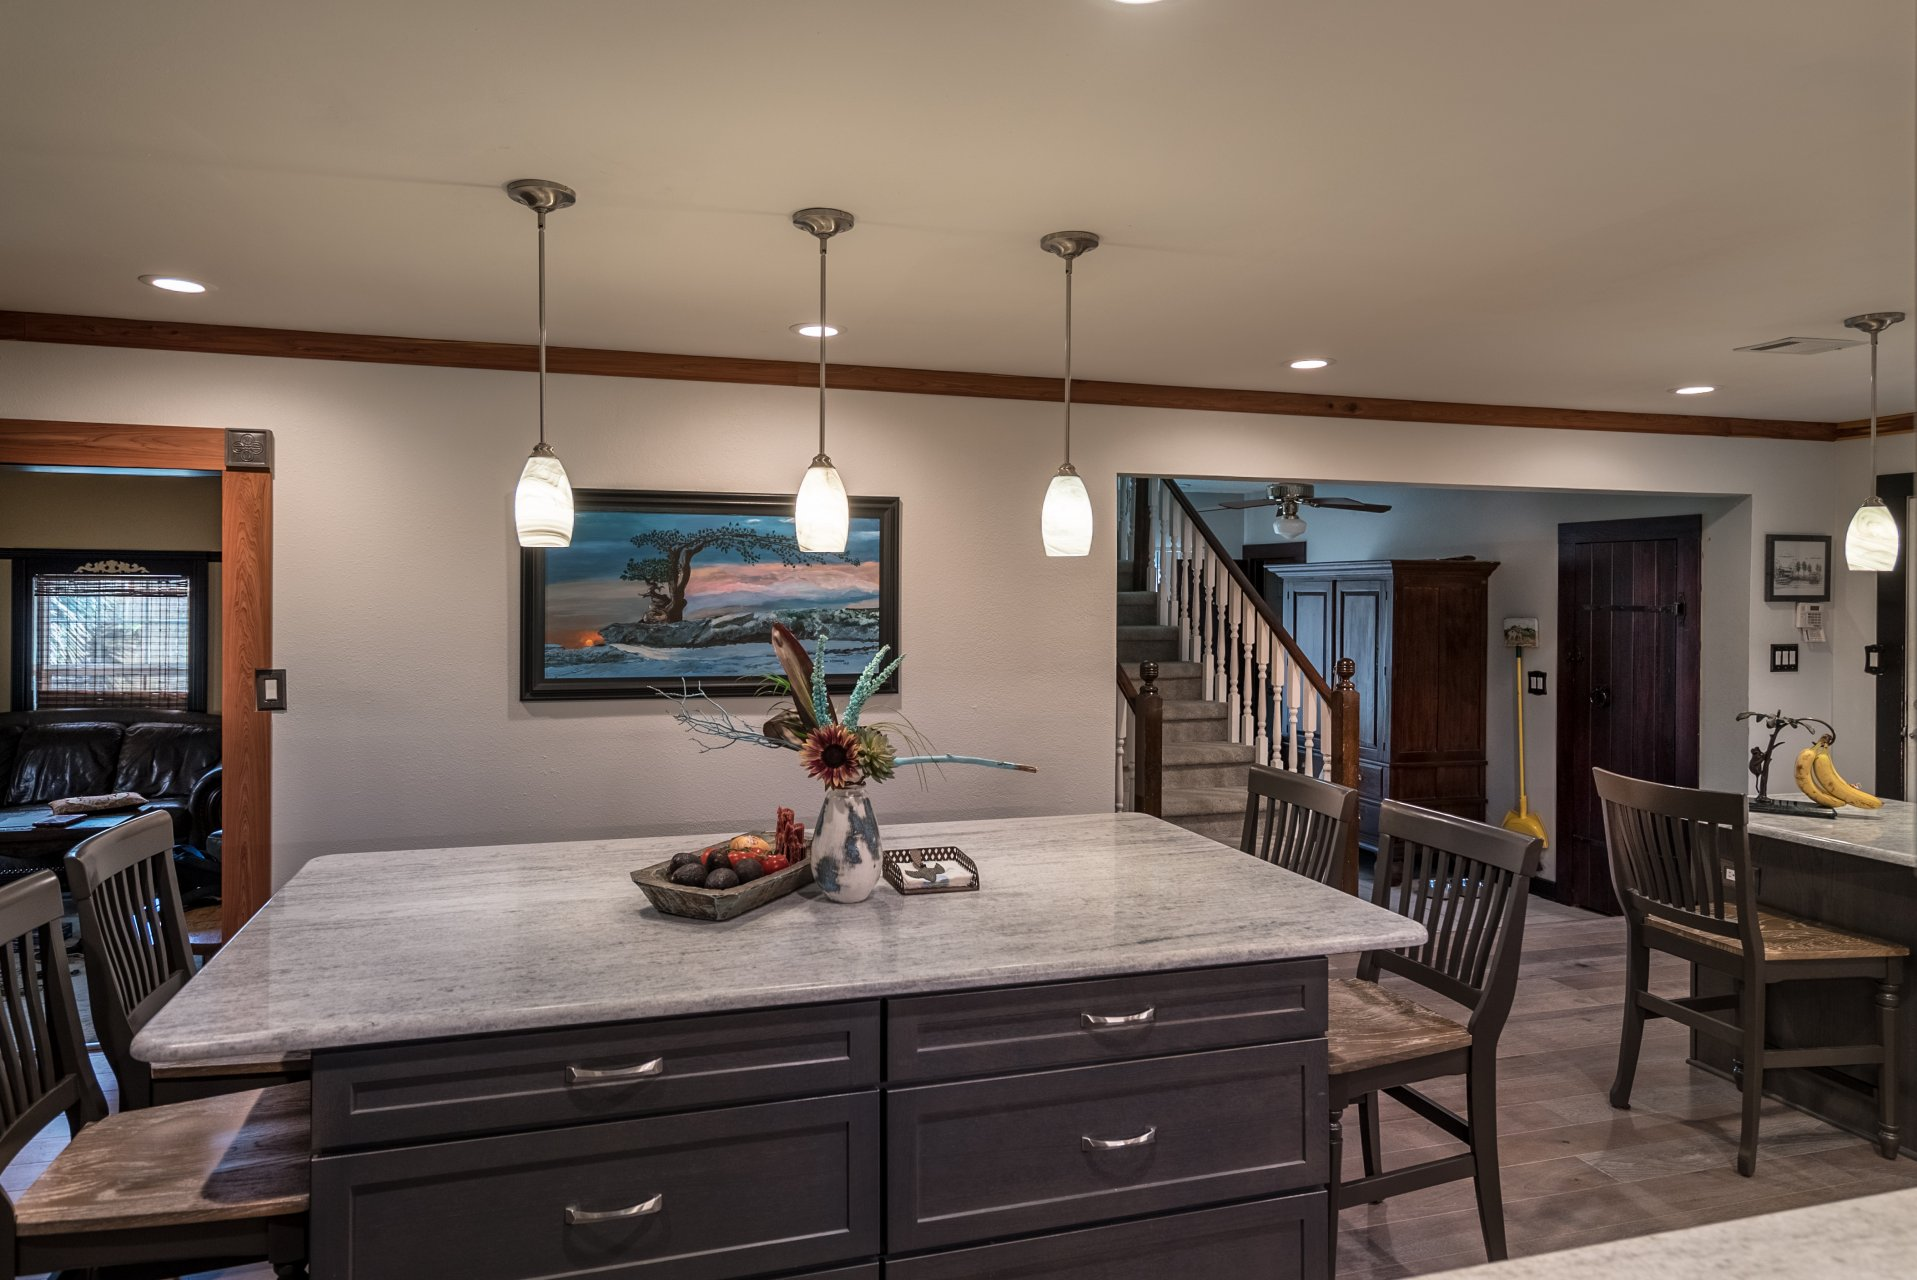 Kitchen and Dining Room Remodel - large island